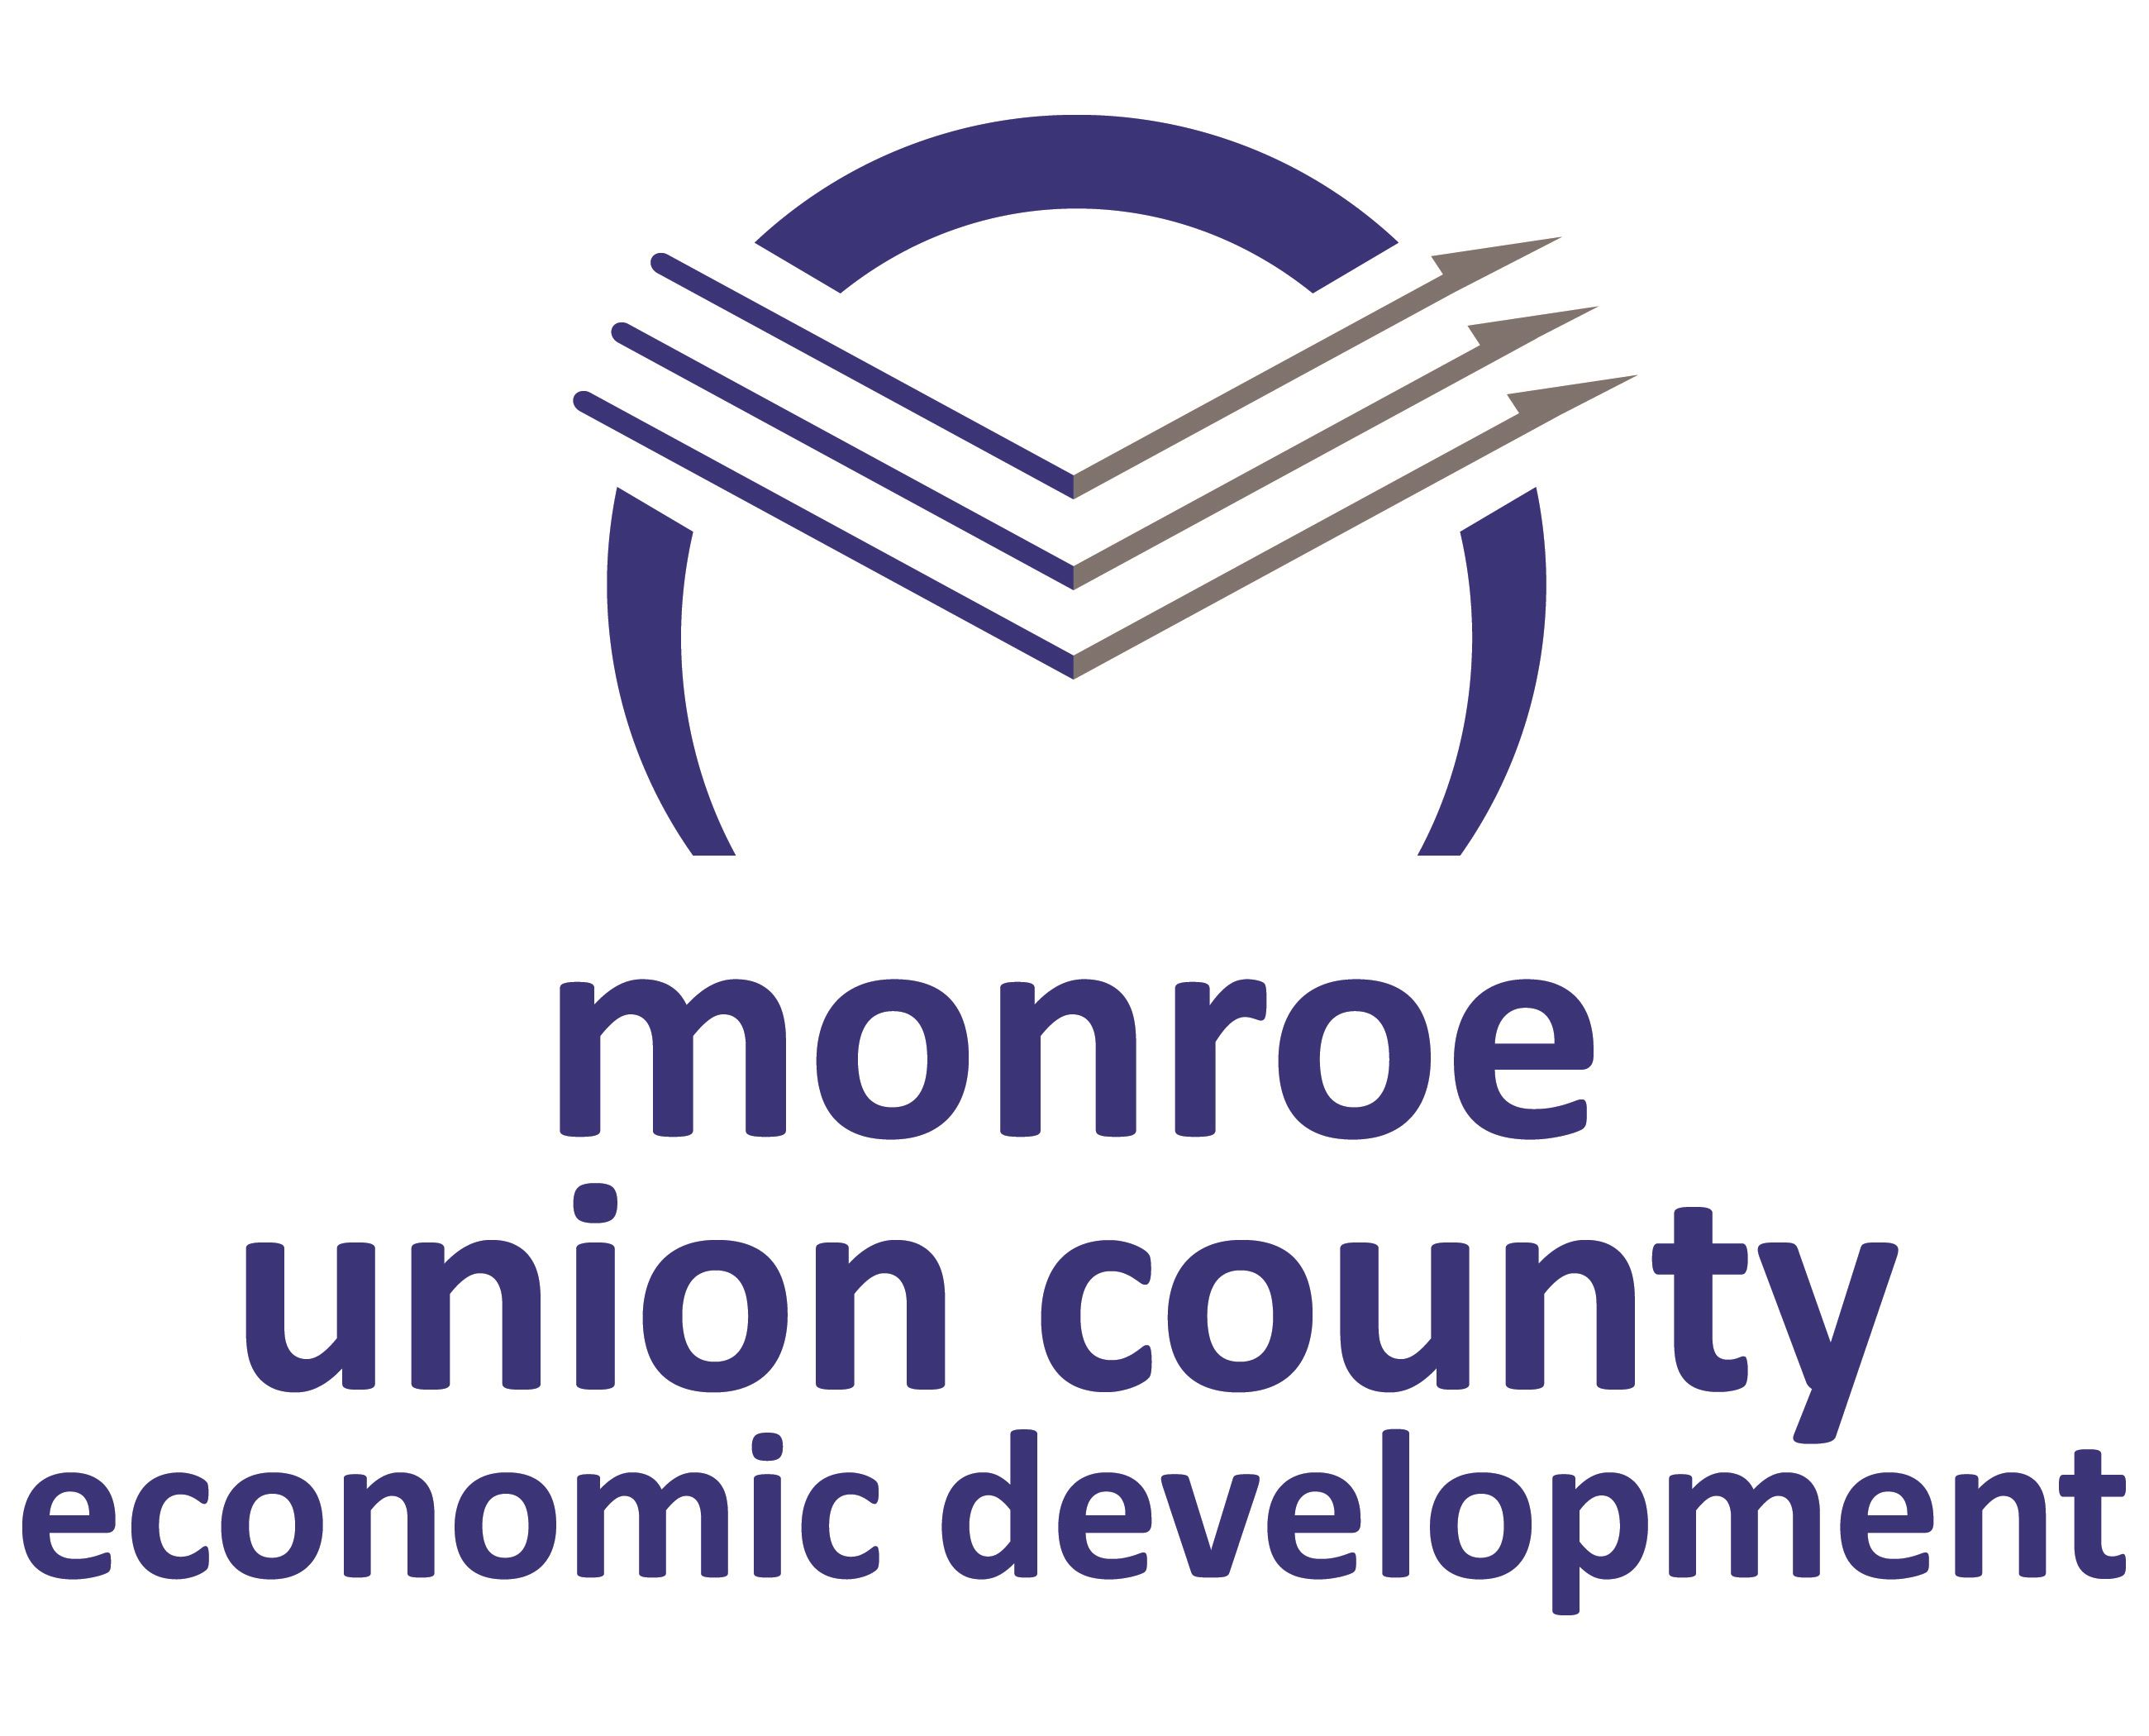 Monroe Union County Economic Development logo